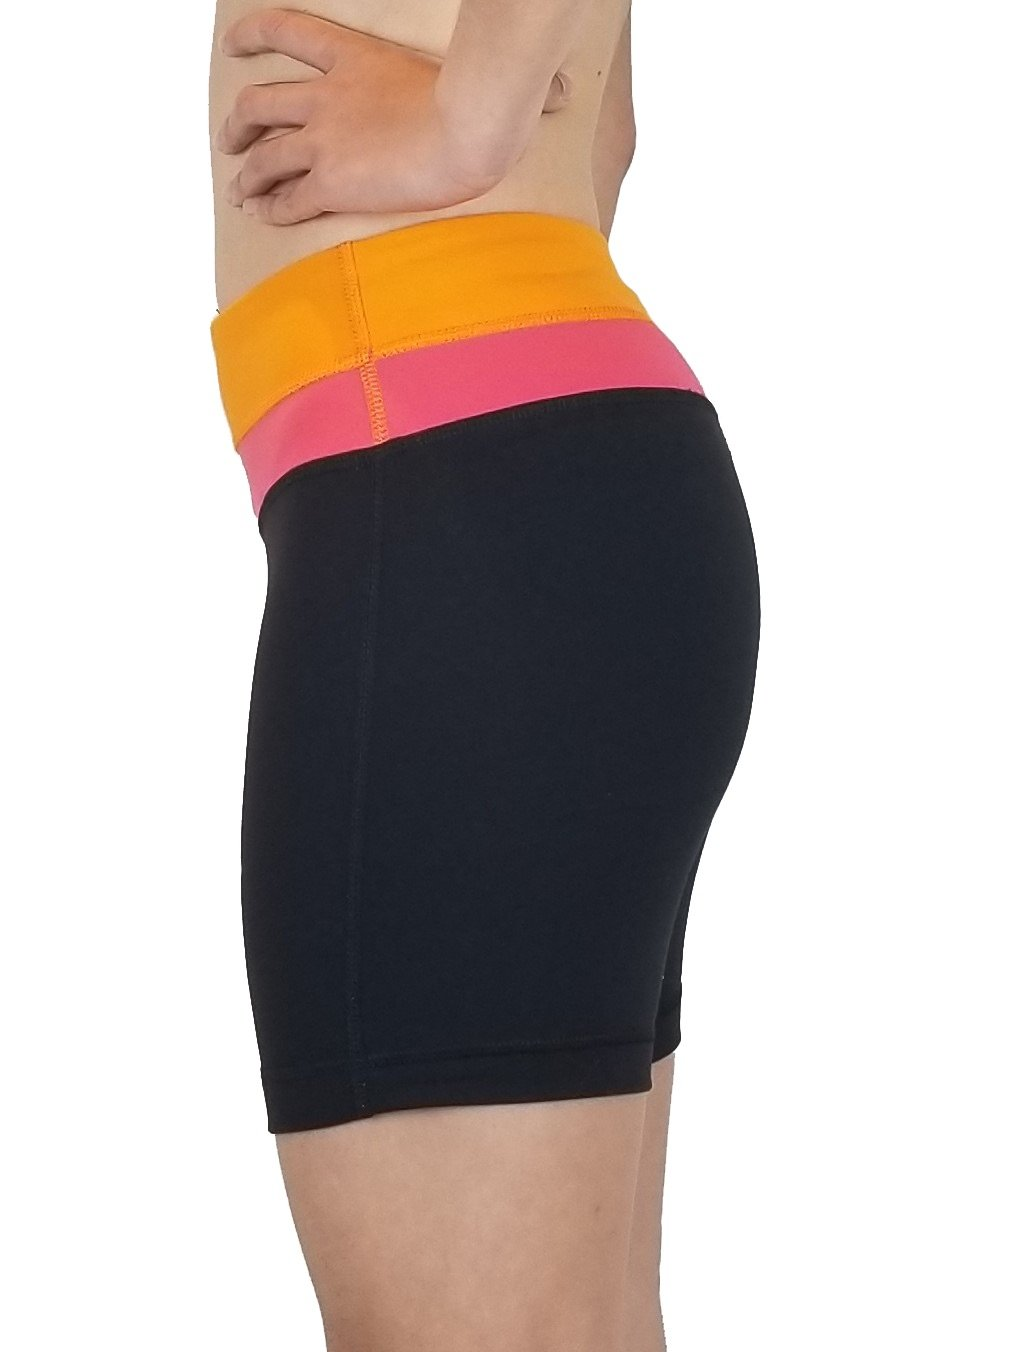 Lululemon Align Shorts 4'' Yoga, High waist align shorts perfect for your active life style. Lululemon size 2. https://info.lululemon.com/help/size-chart, Black, Orange, Pink, Ntlon, Lycra, and Spandex, Yoga, yoga pants, athletic wear, work out, comfortable pants, fitness, fit